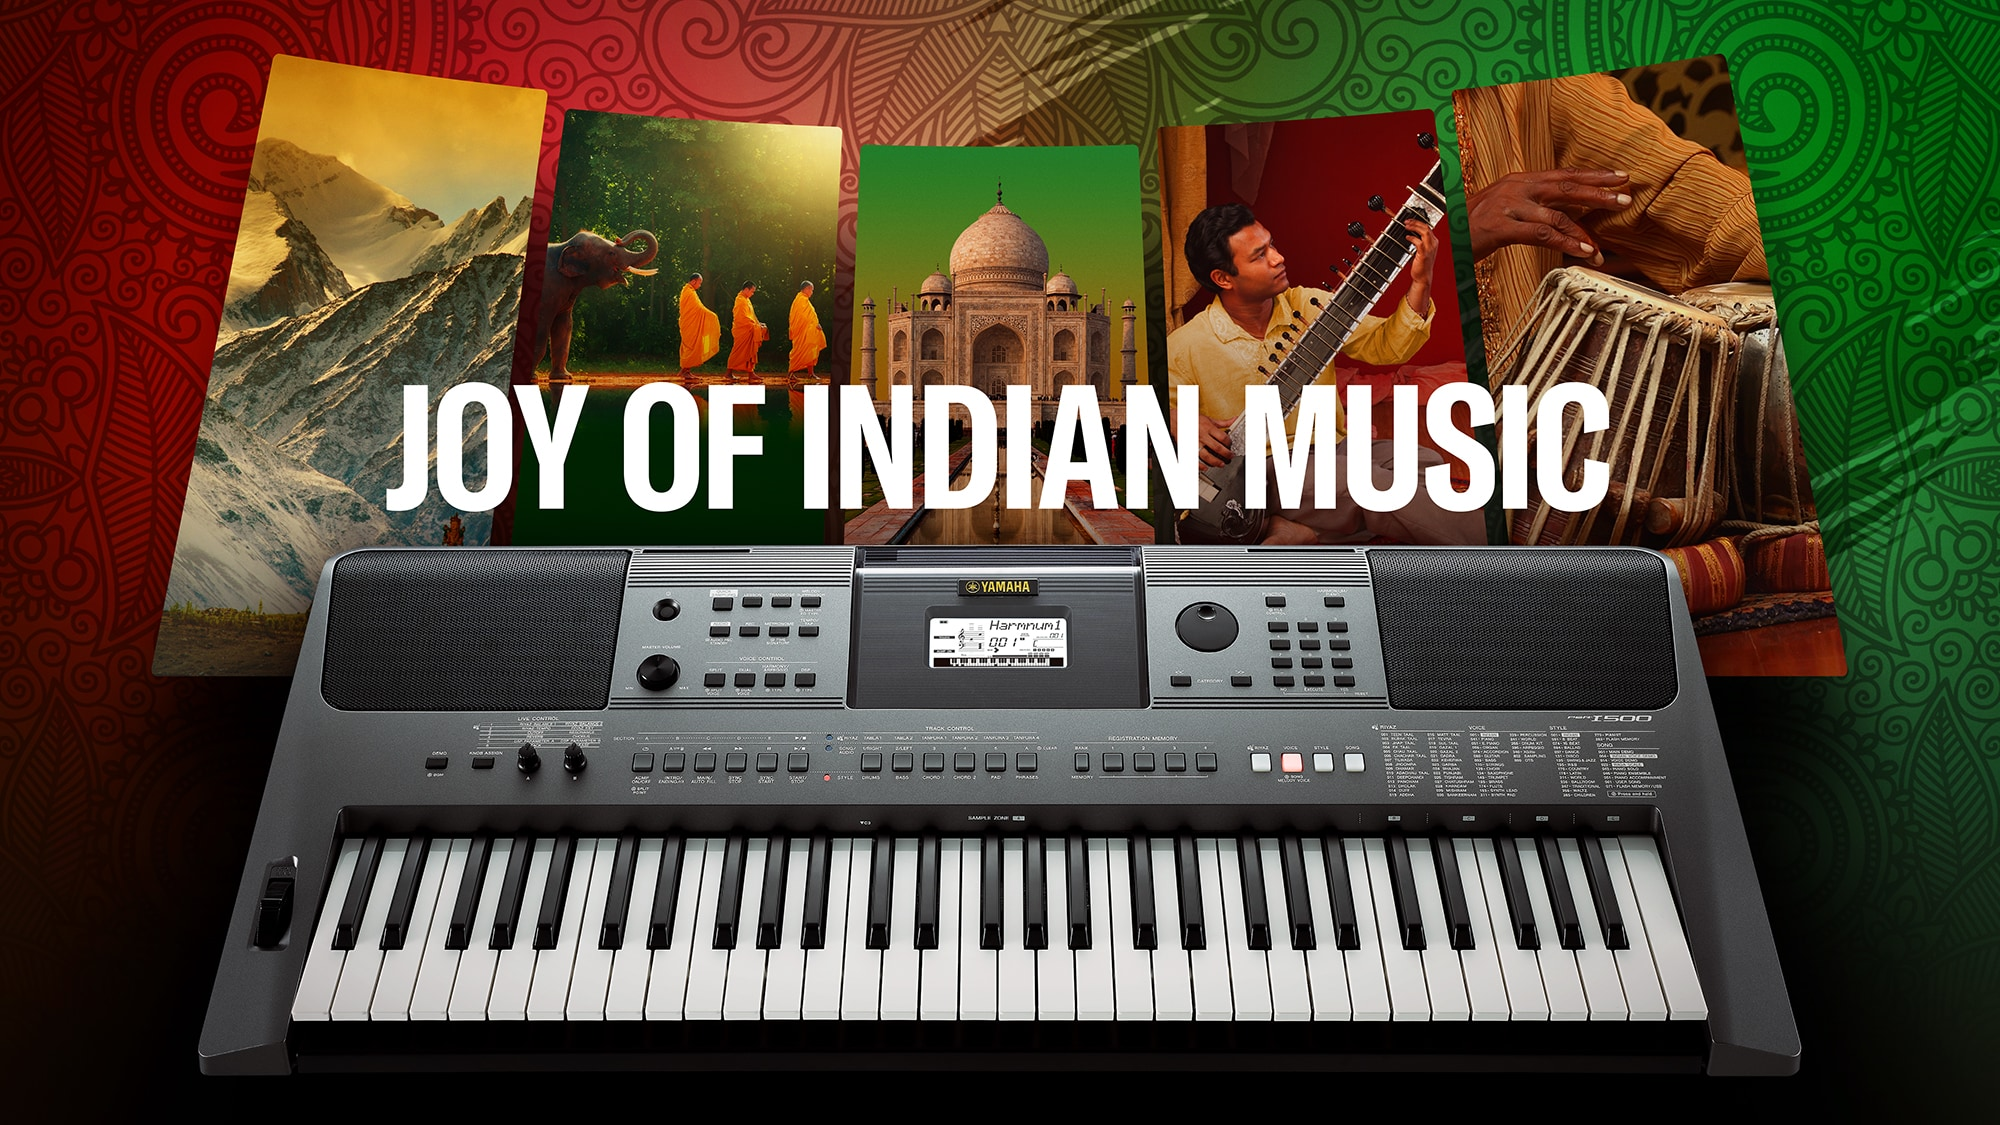 Joy of Indian Music